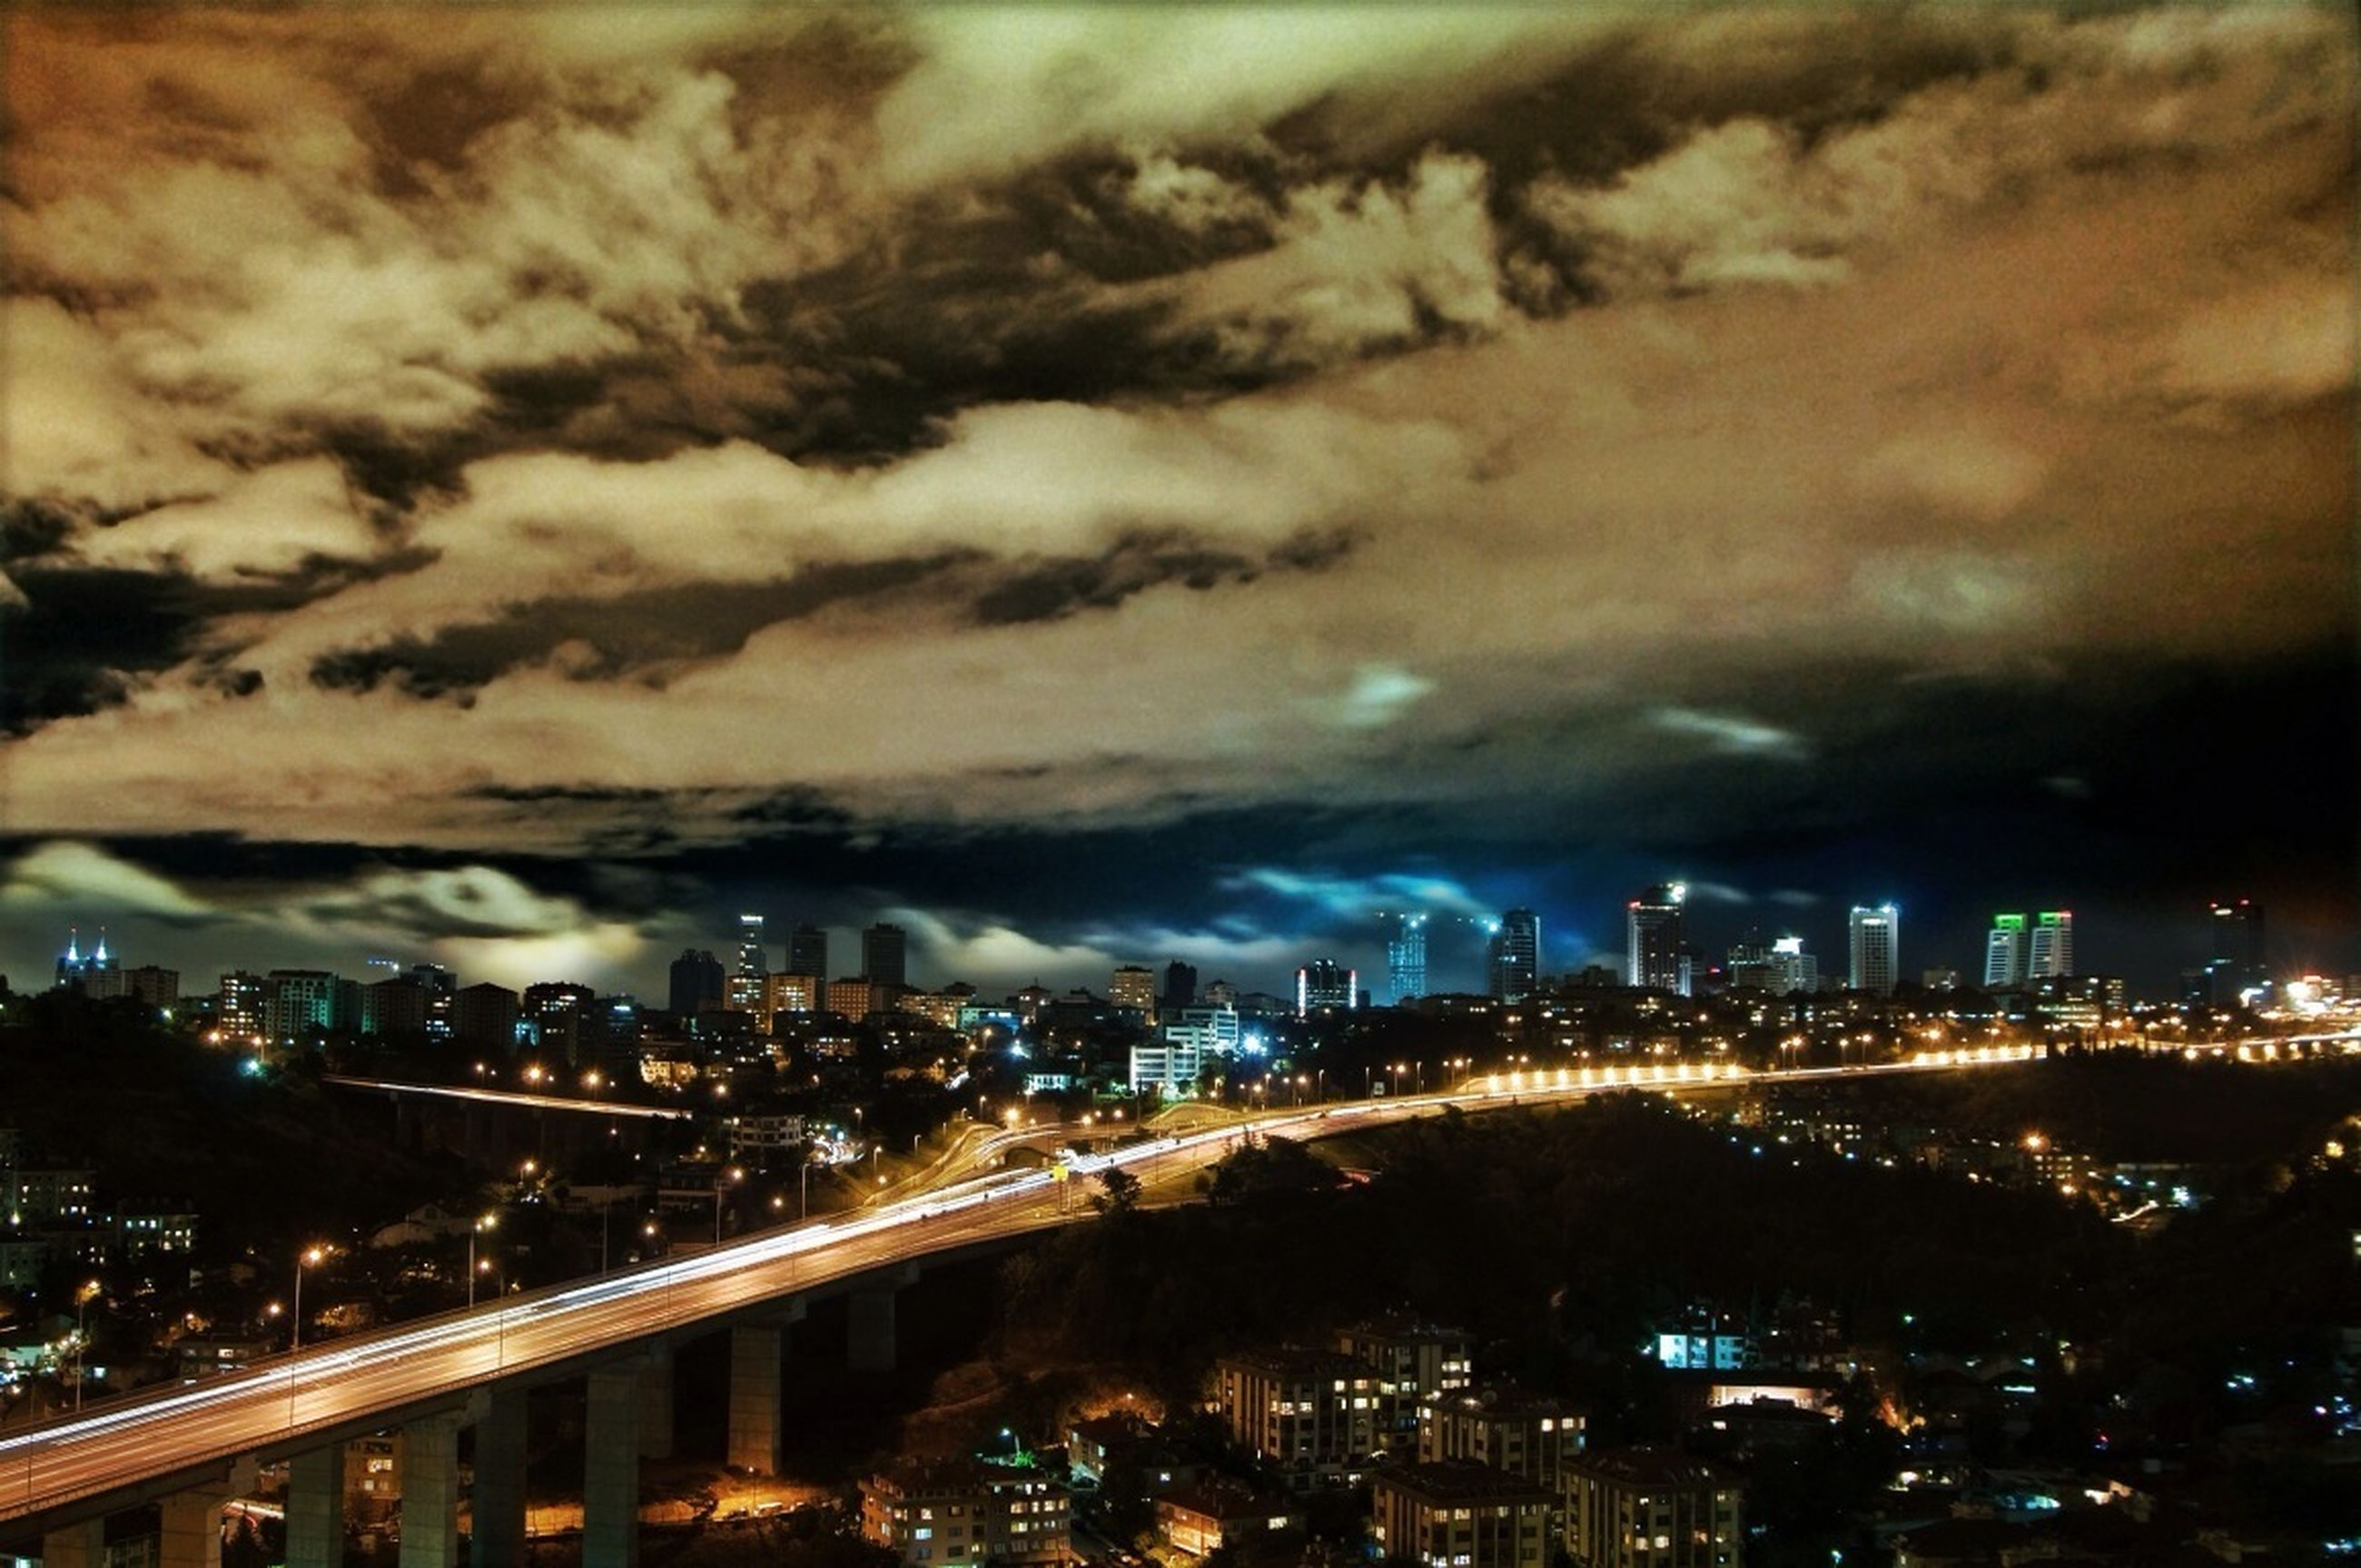 illuminated, city, architecture, cityscape, built structure, building exterior, night, sky, cloud - sky, crowded, cloudy, high angle view, city life, residential district, residential building, dusk, storm cloud, outdoors, residential structure, weather